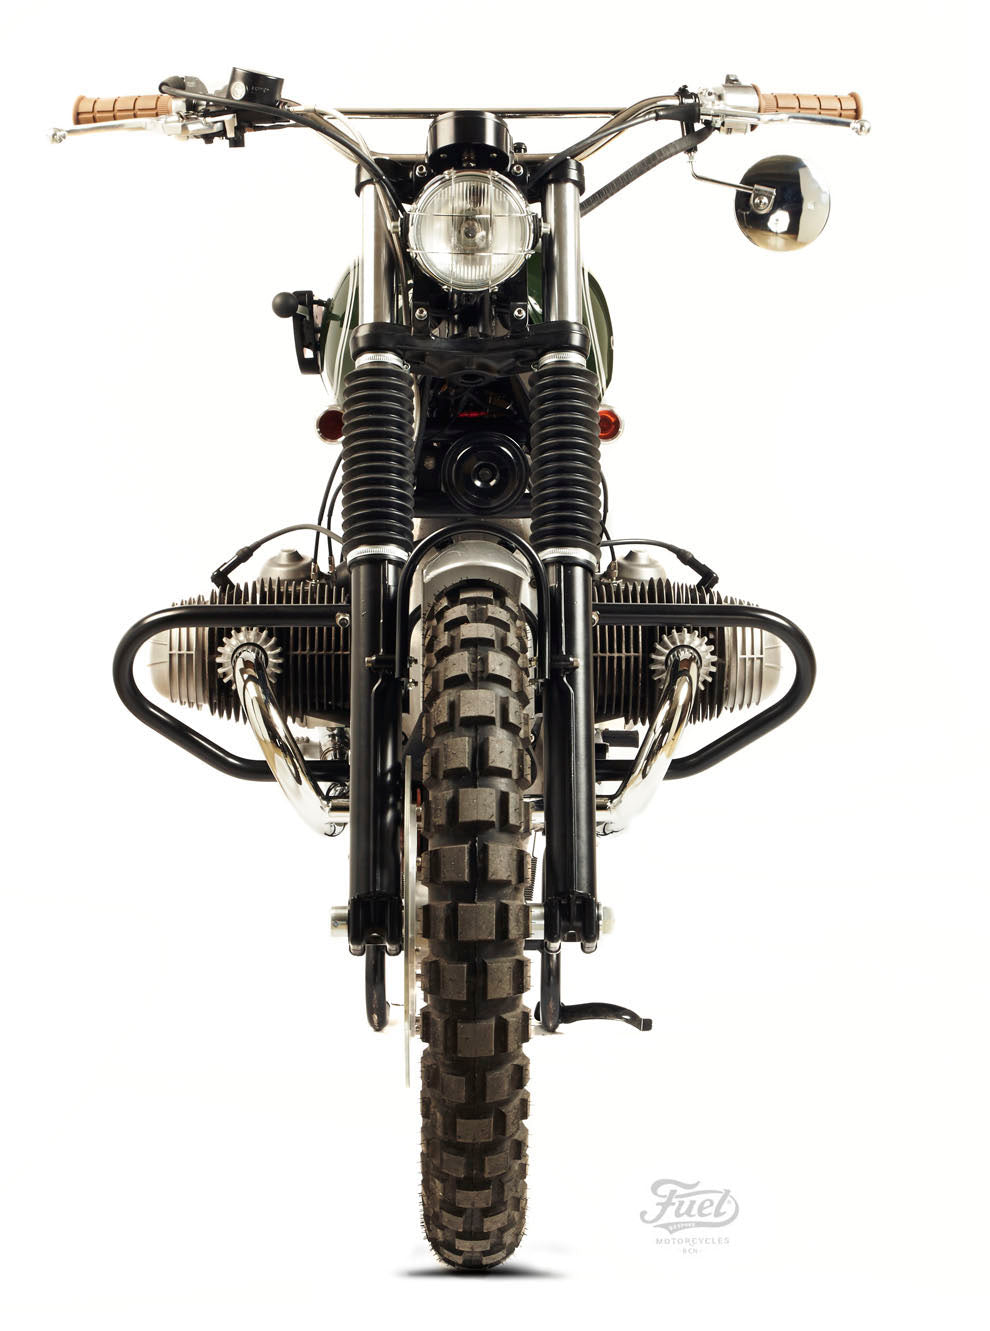 NEW FUEL R80 S TRIAL 4